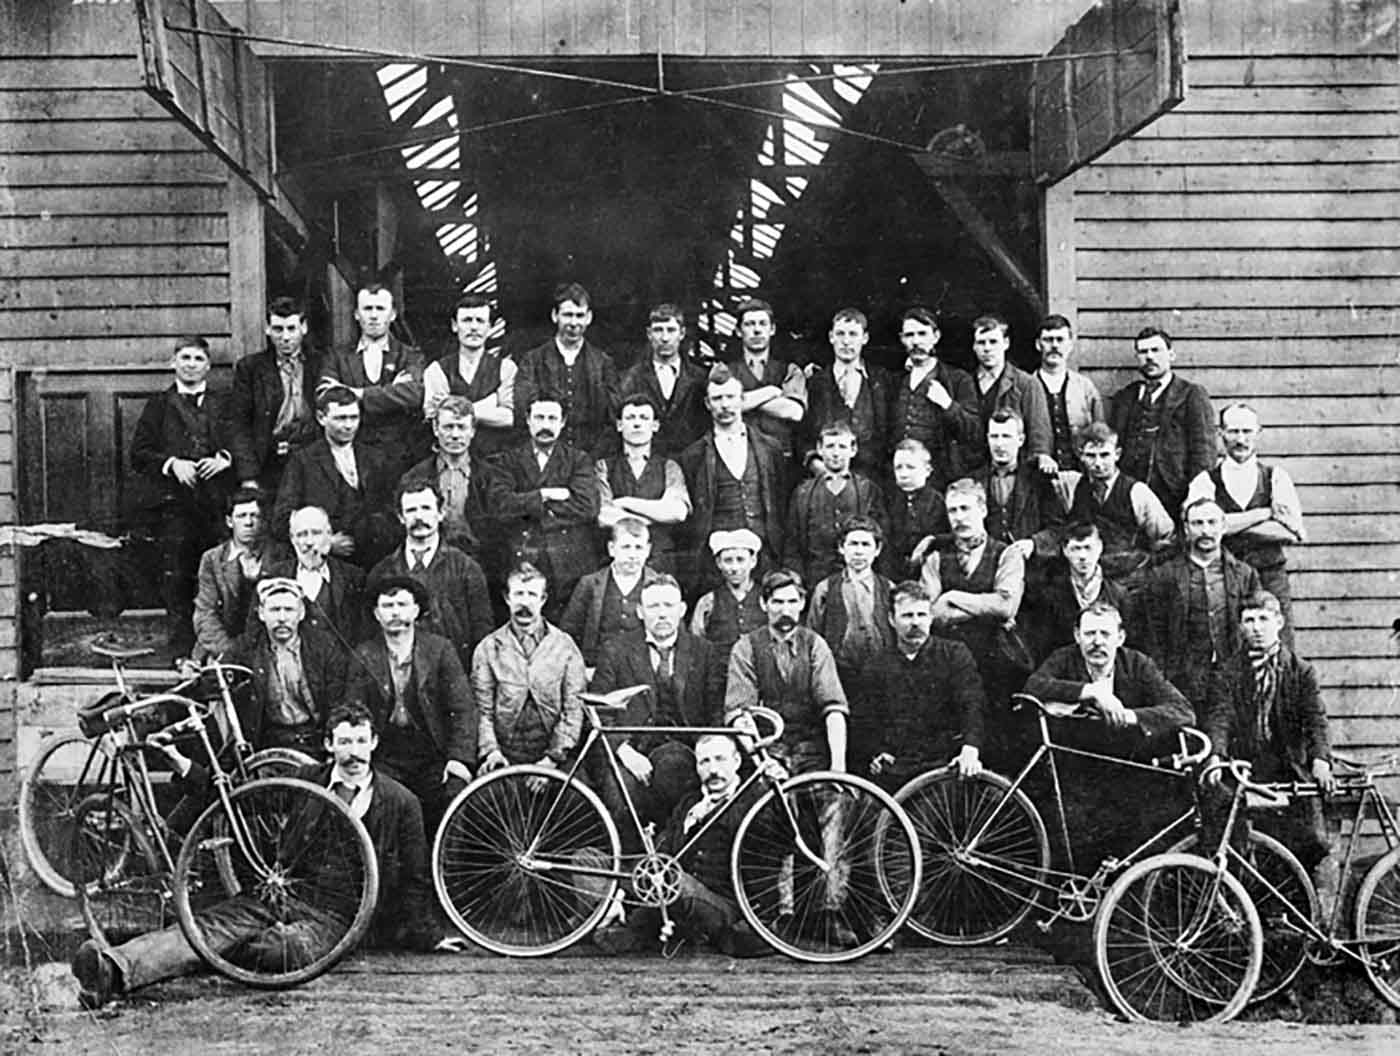 Black and white photo of a group of men posing in front of a factory building.